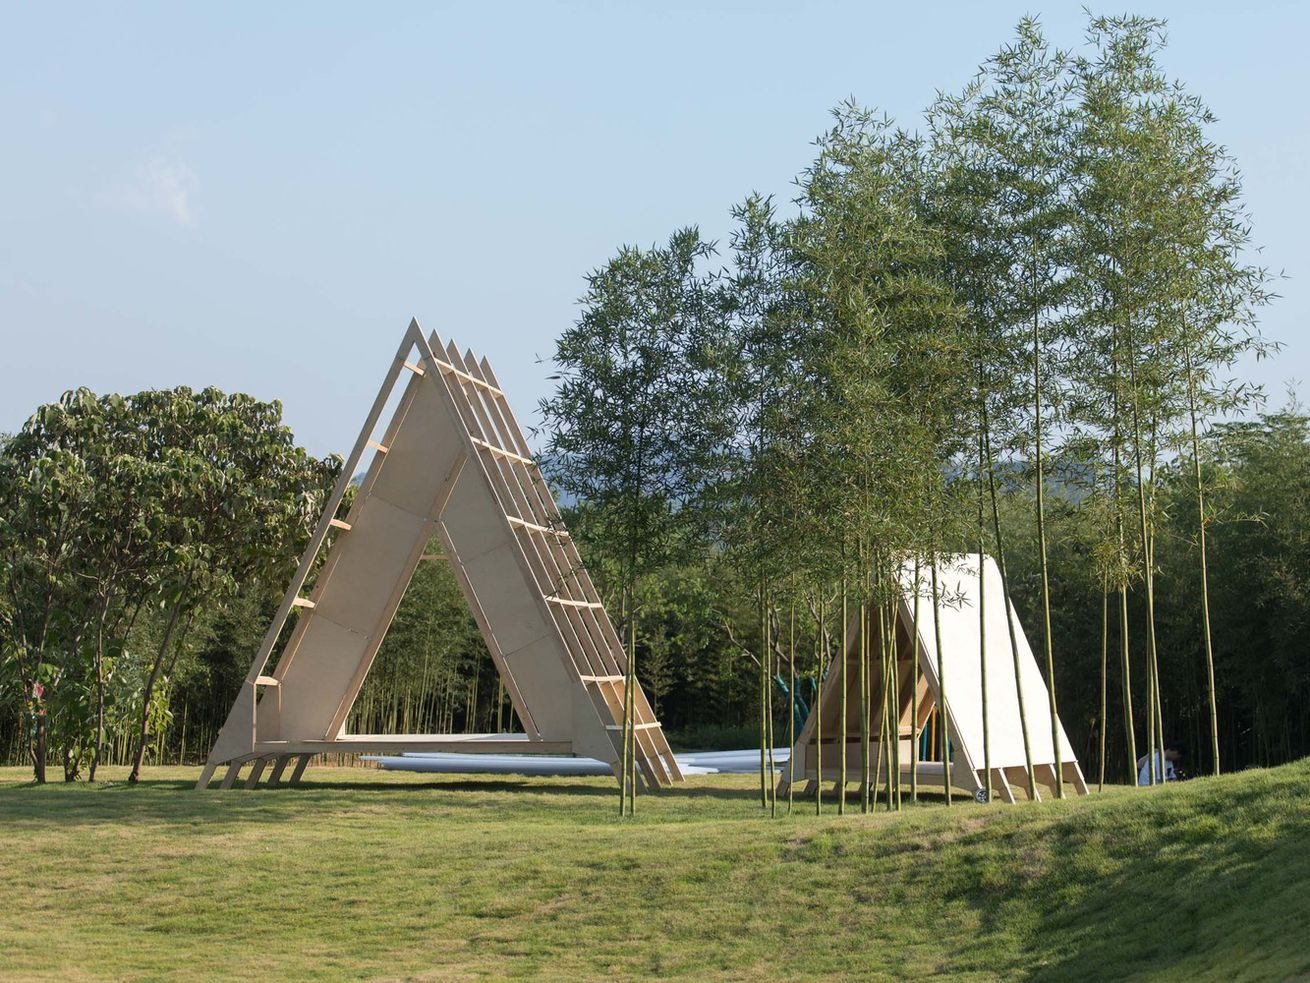 These A-frame cabins were built with help from kids